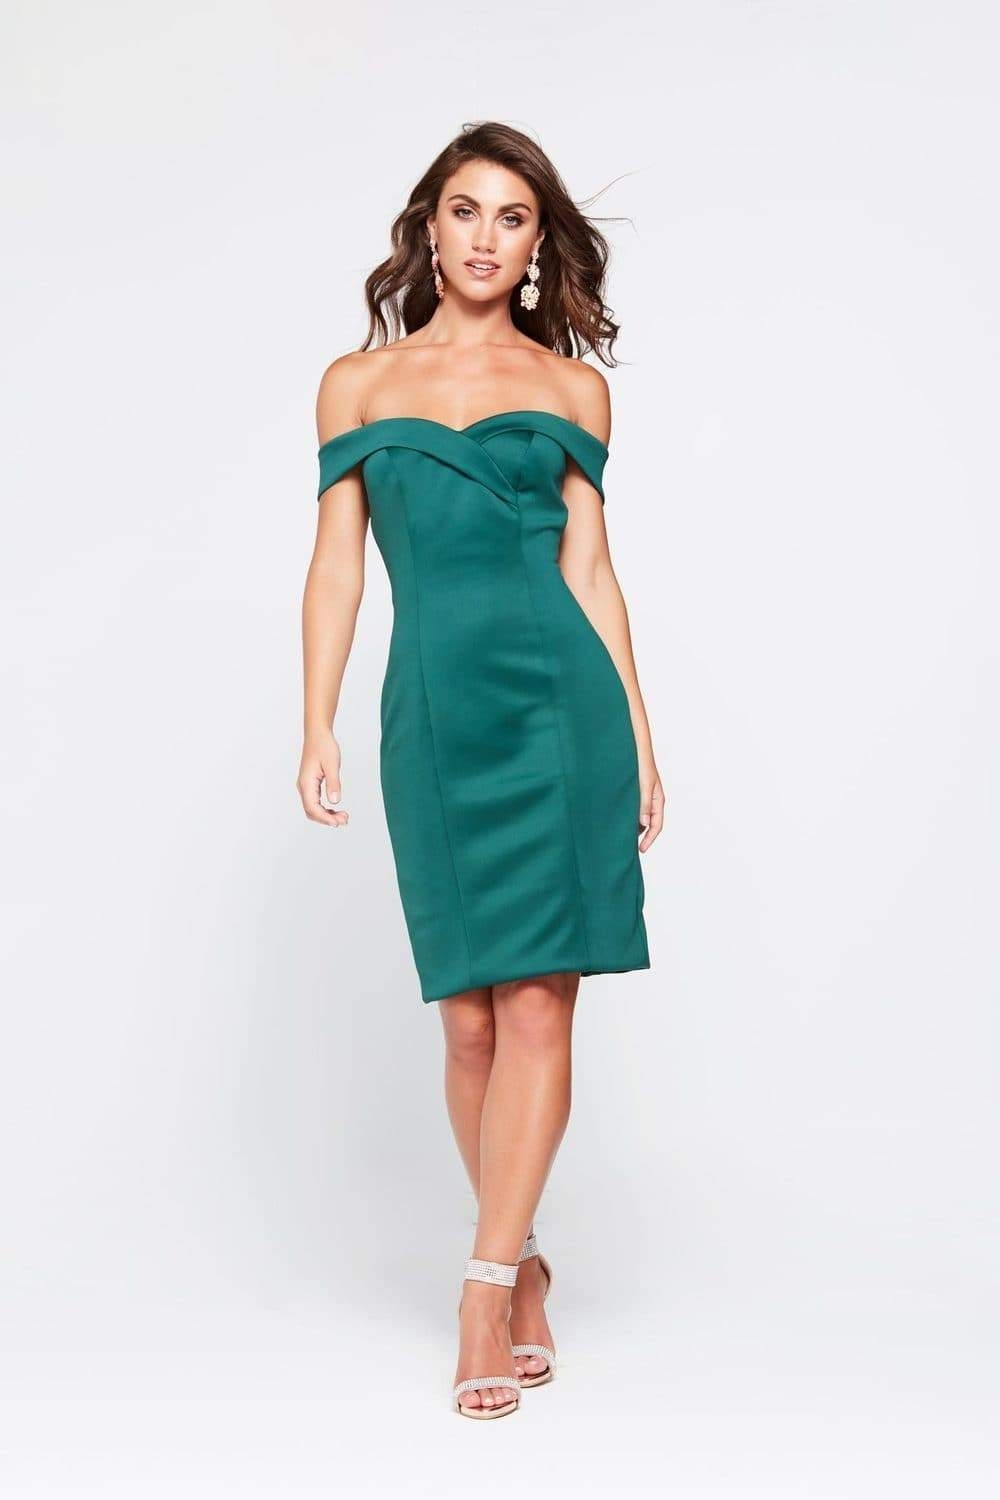 In stock - Ester Ponti Cocktail Dress - Emerald